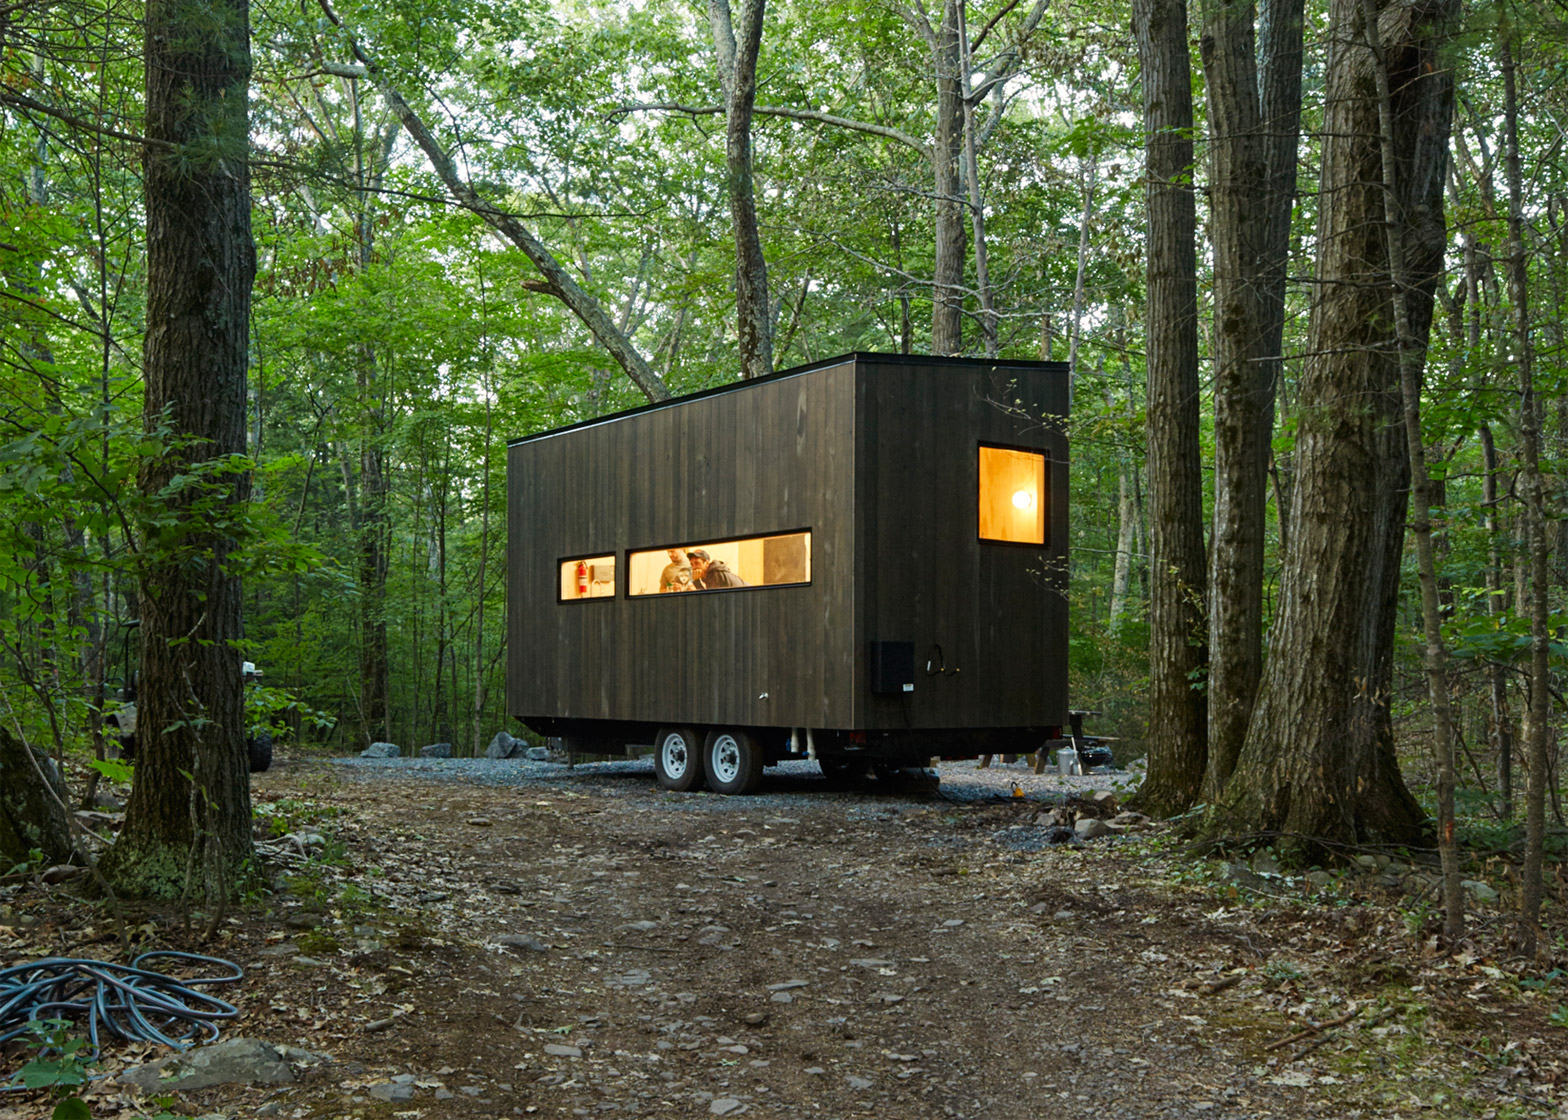 getaway-cabin-eleanor-photo-roderick-aichinger_dezeen_1568_0.jpg